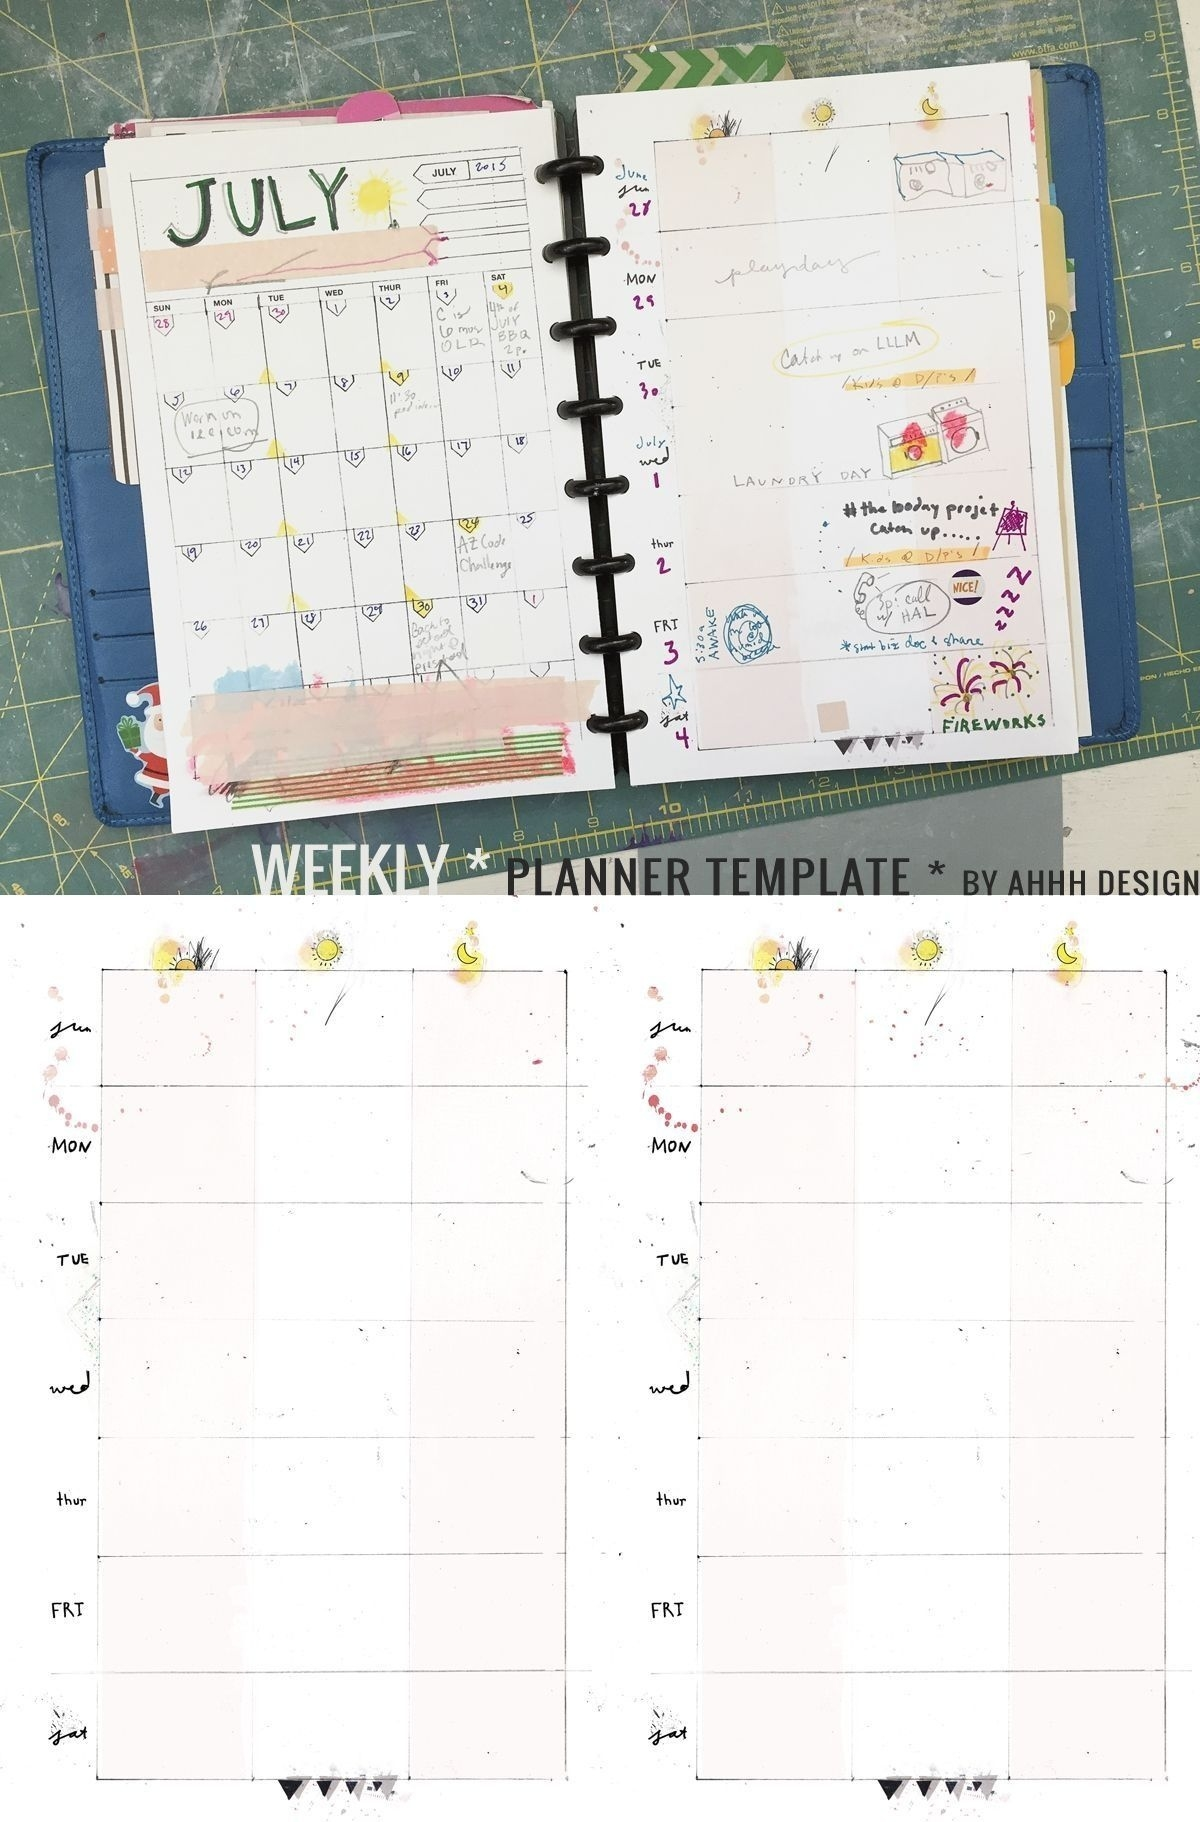 How To Free 8.5 X 5.5 Printable Calendar In 2020 | Planner Calendar Template 8.5 X 5.5